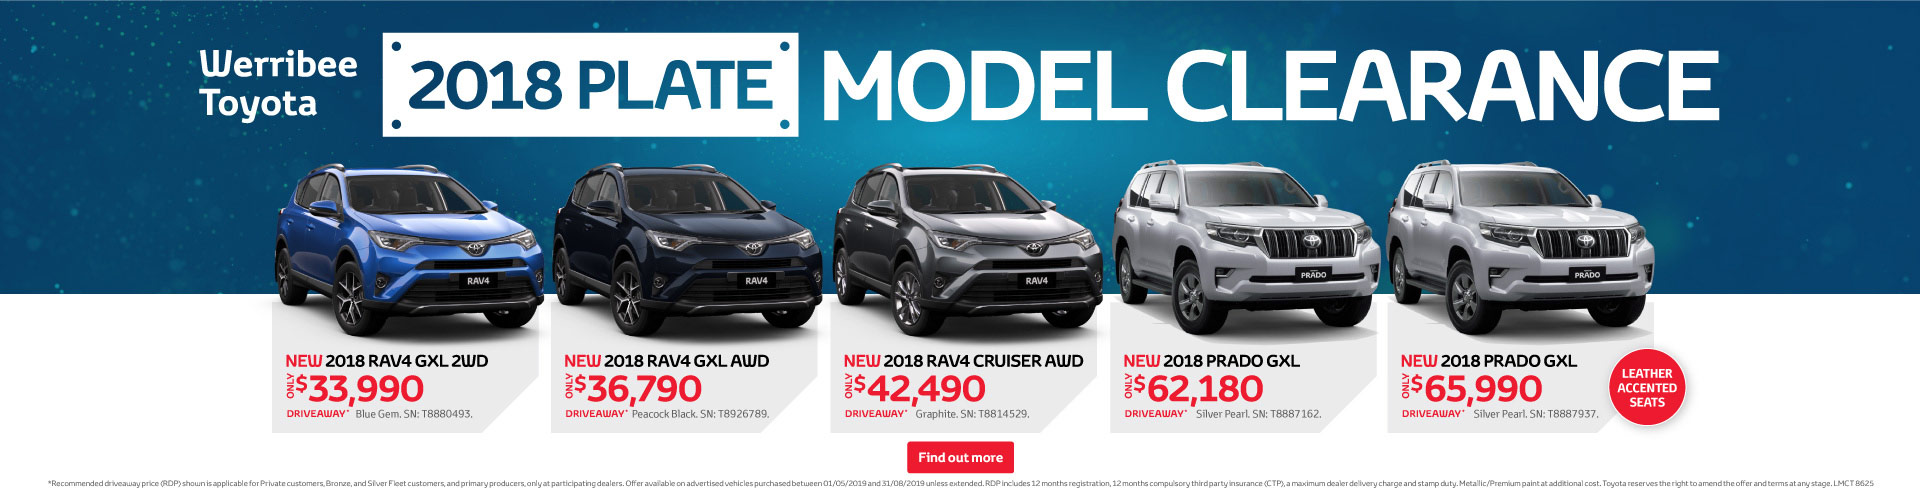 Werribee Toyota 2018 Model Clearance